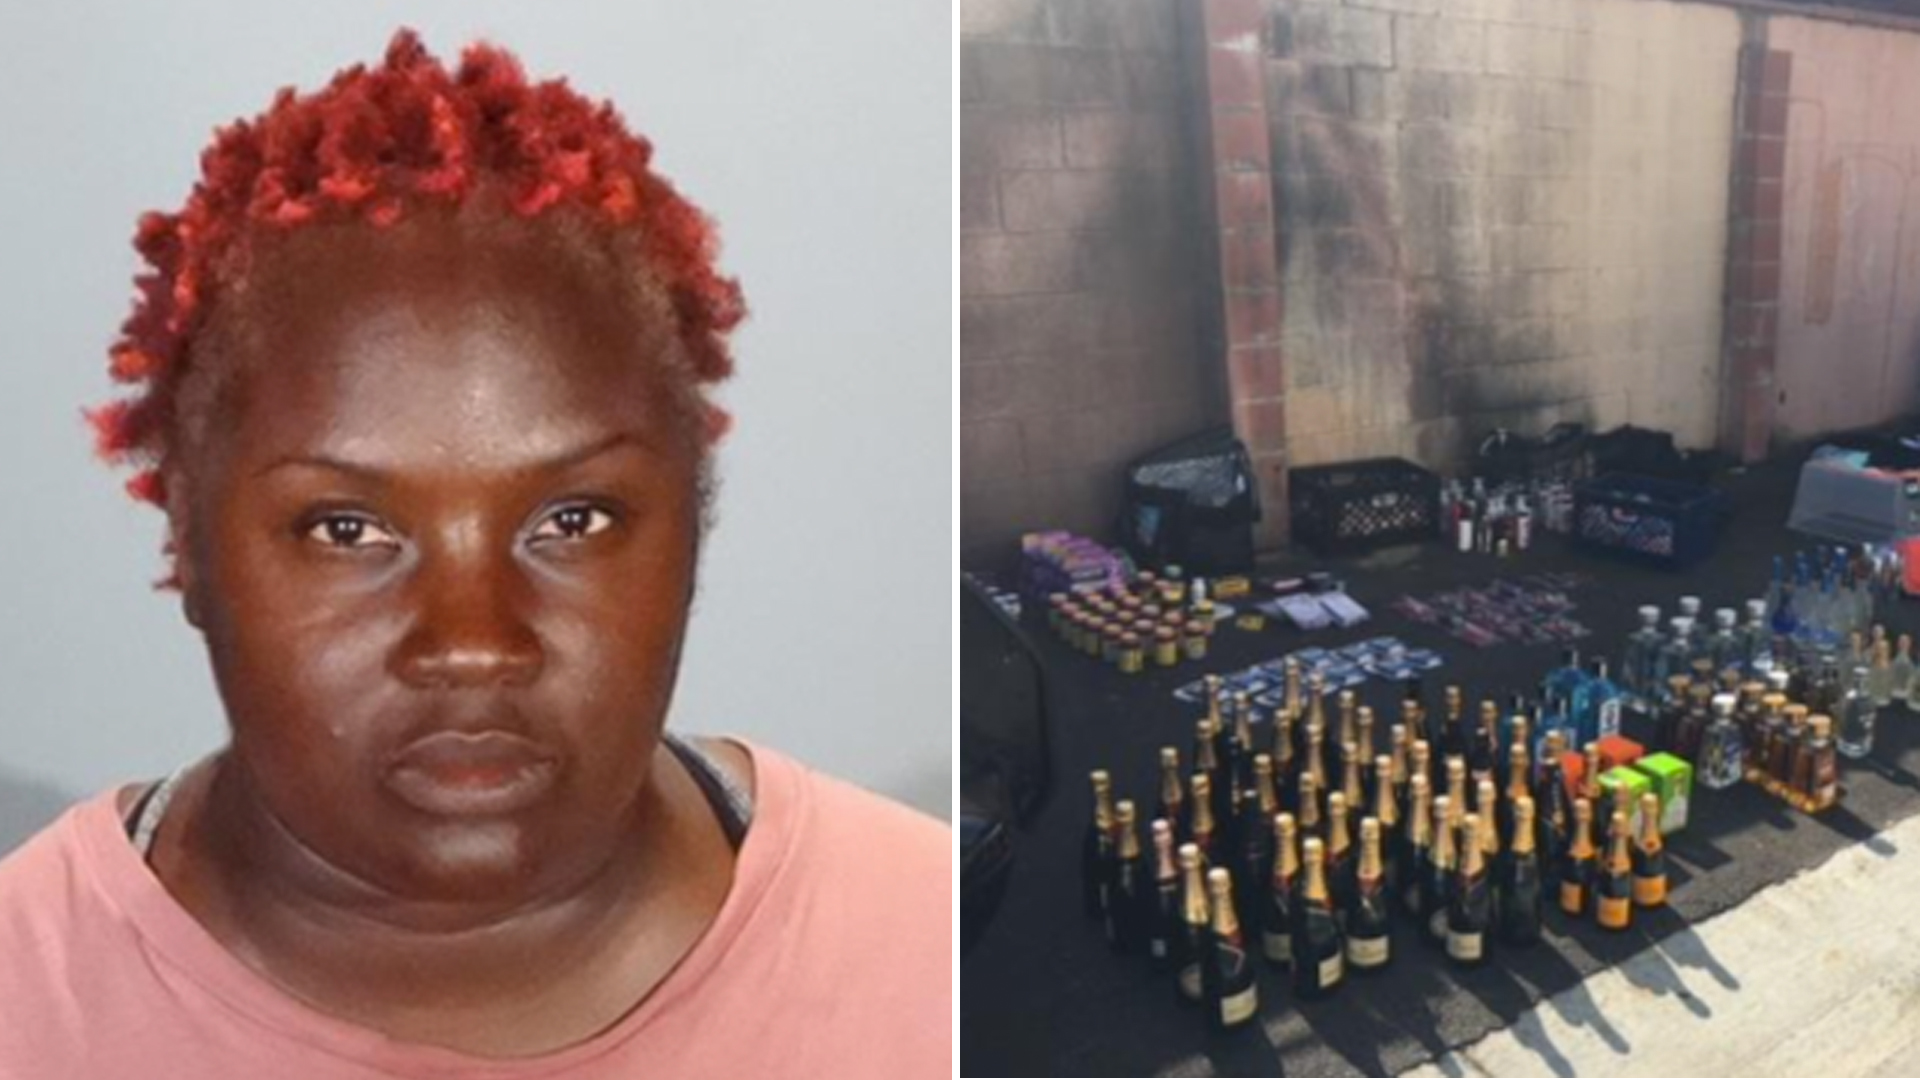 Glendale police provided this booking photo of Tiffany Mathis and an image of the items officers reported recovering in Inglewood on Aug. 15, 2018.